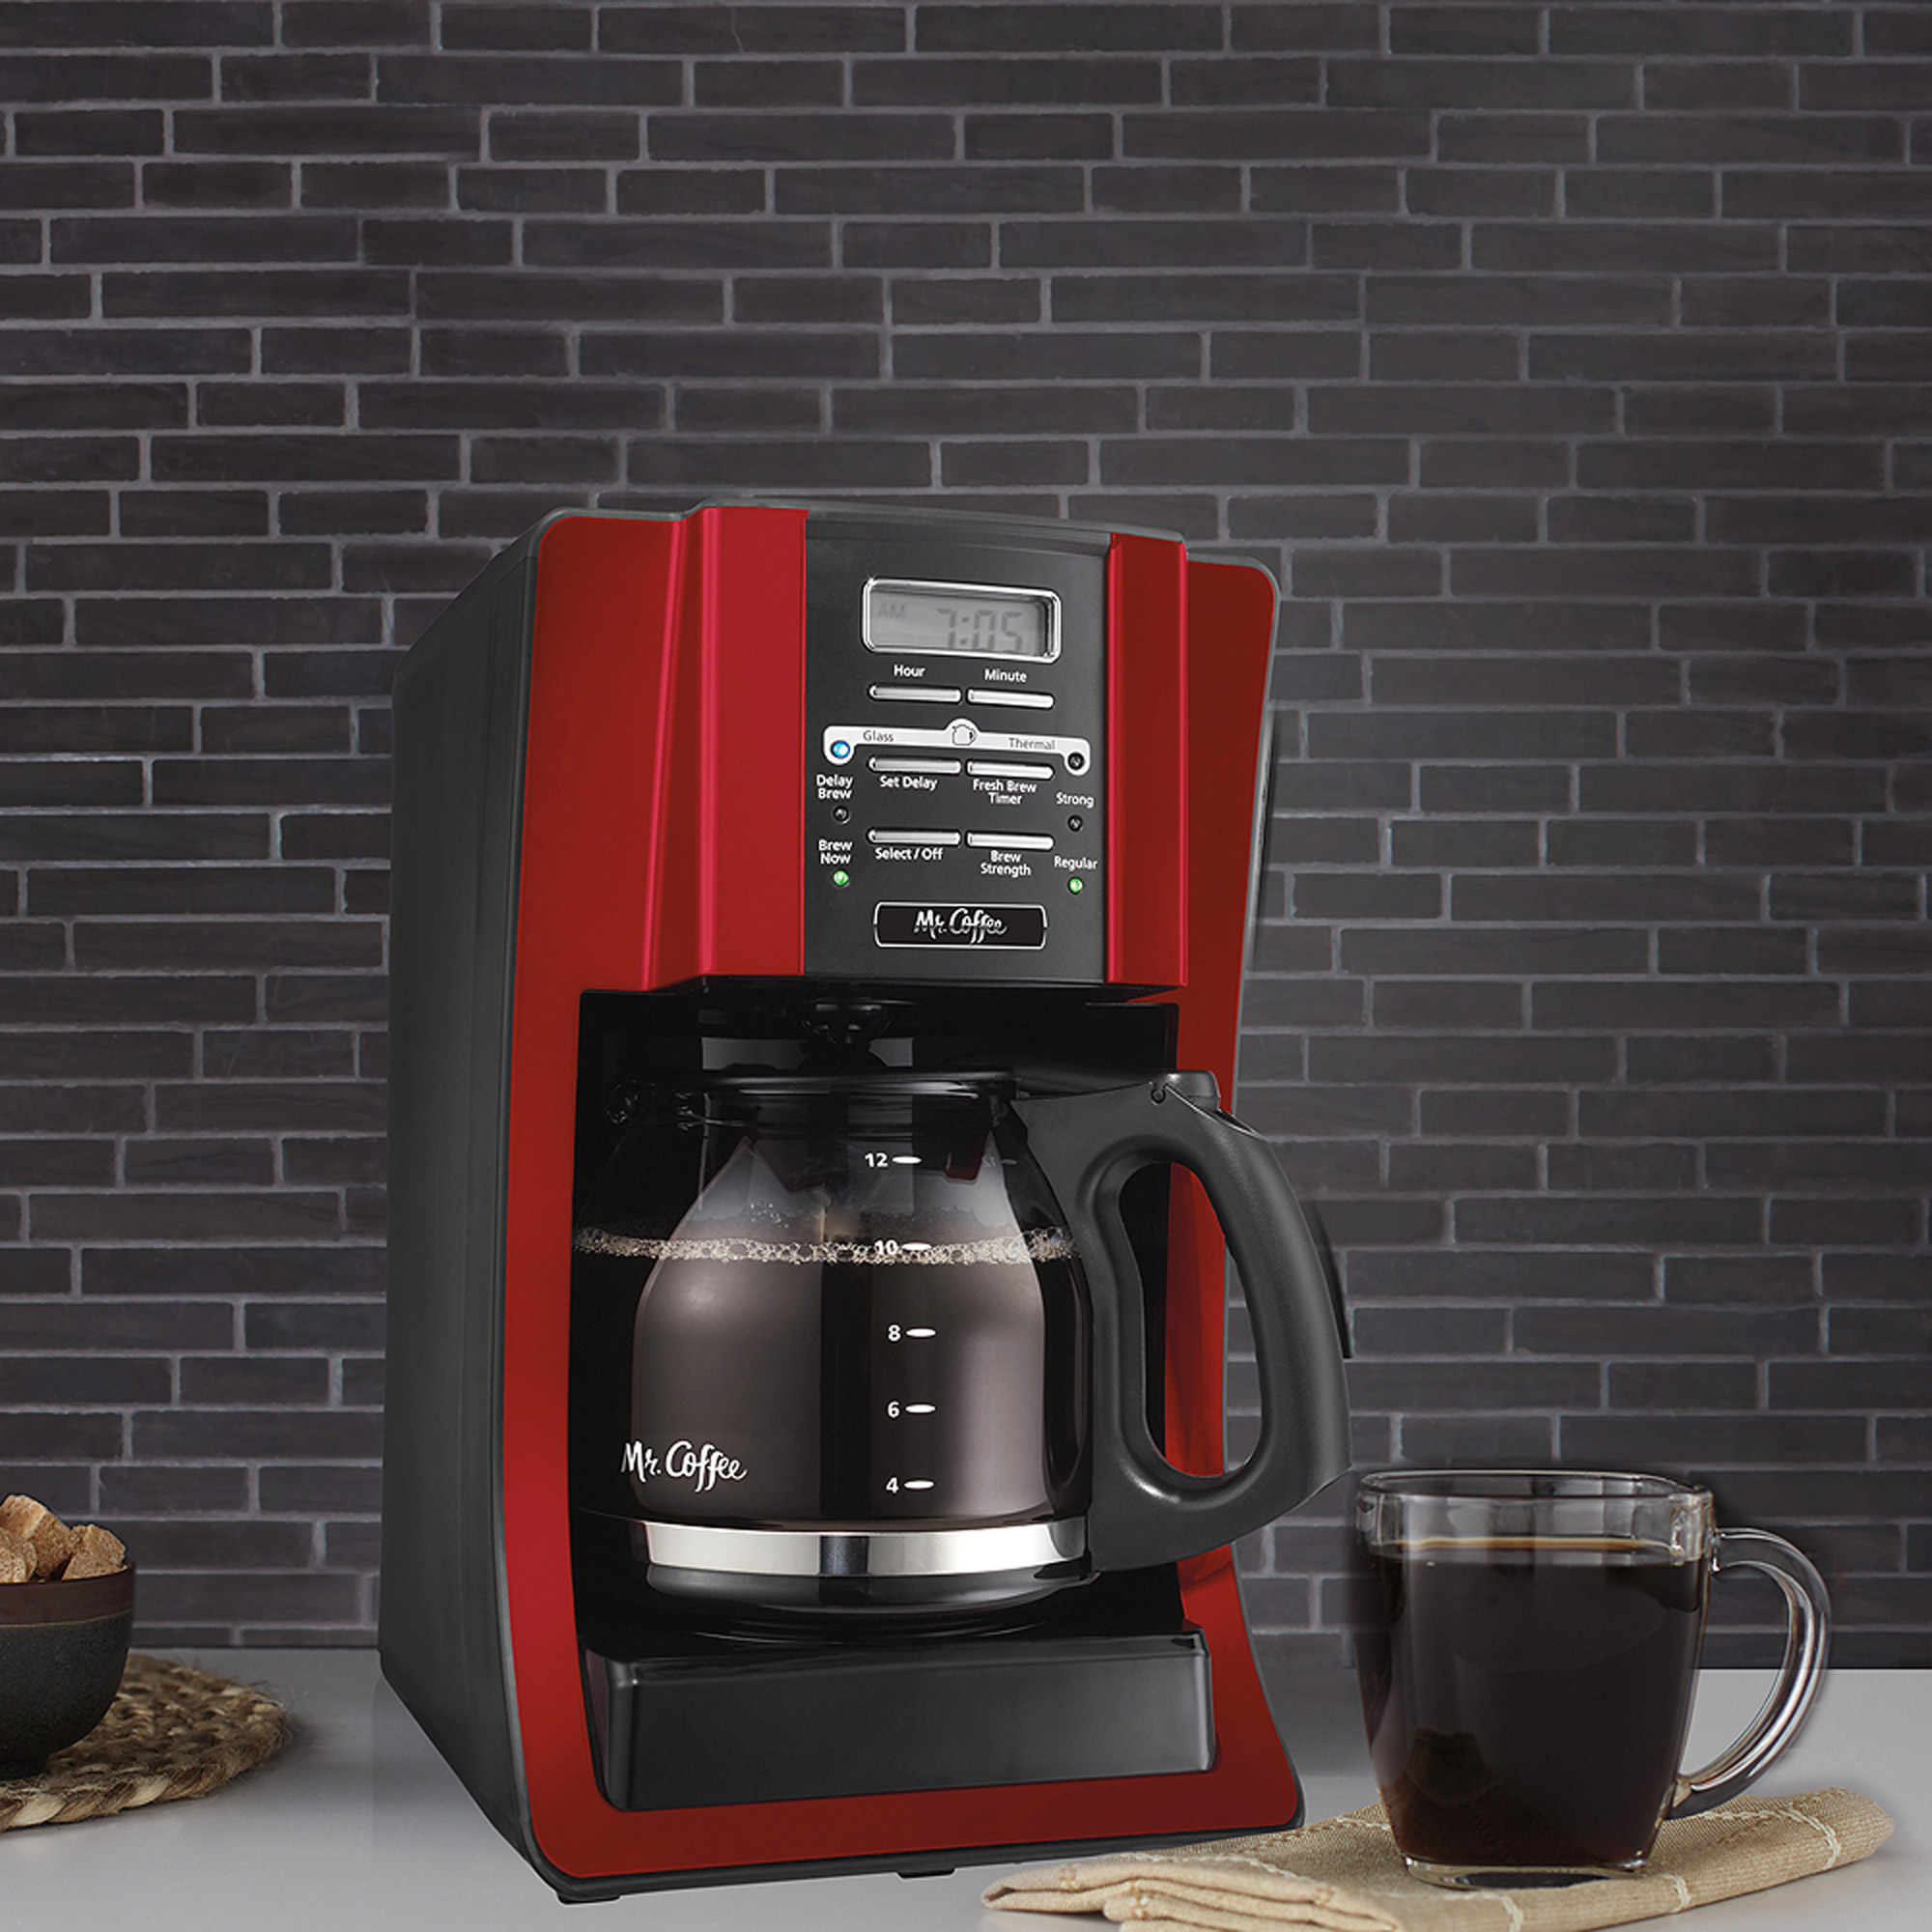 Mr Coffee Coffee Maker Bvmc Sjx36gt : Mr. Programmable 12-Cup Coffee Coffee Maker SJX